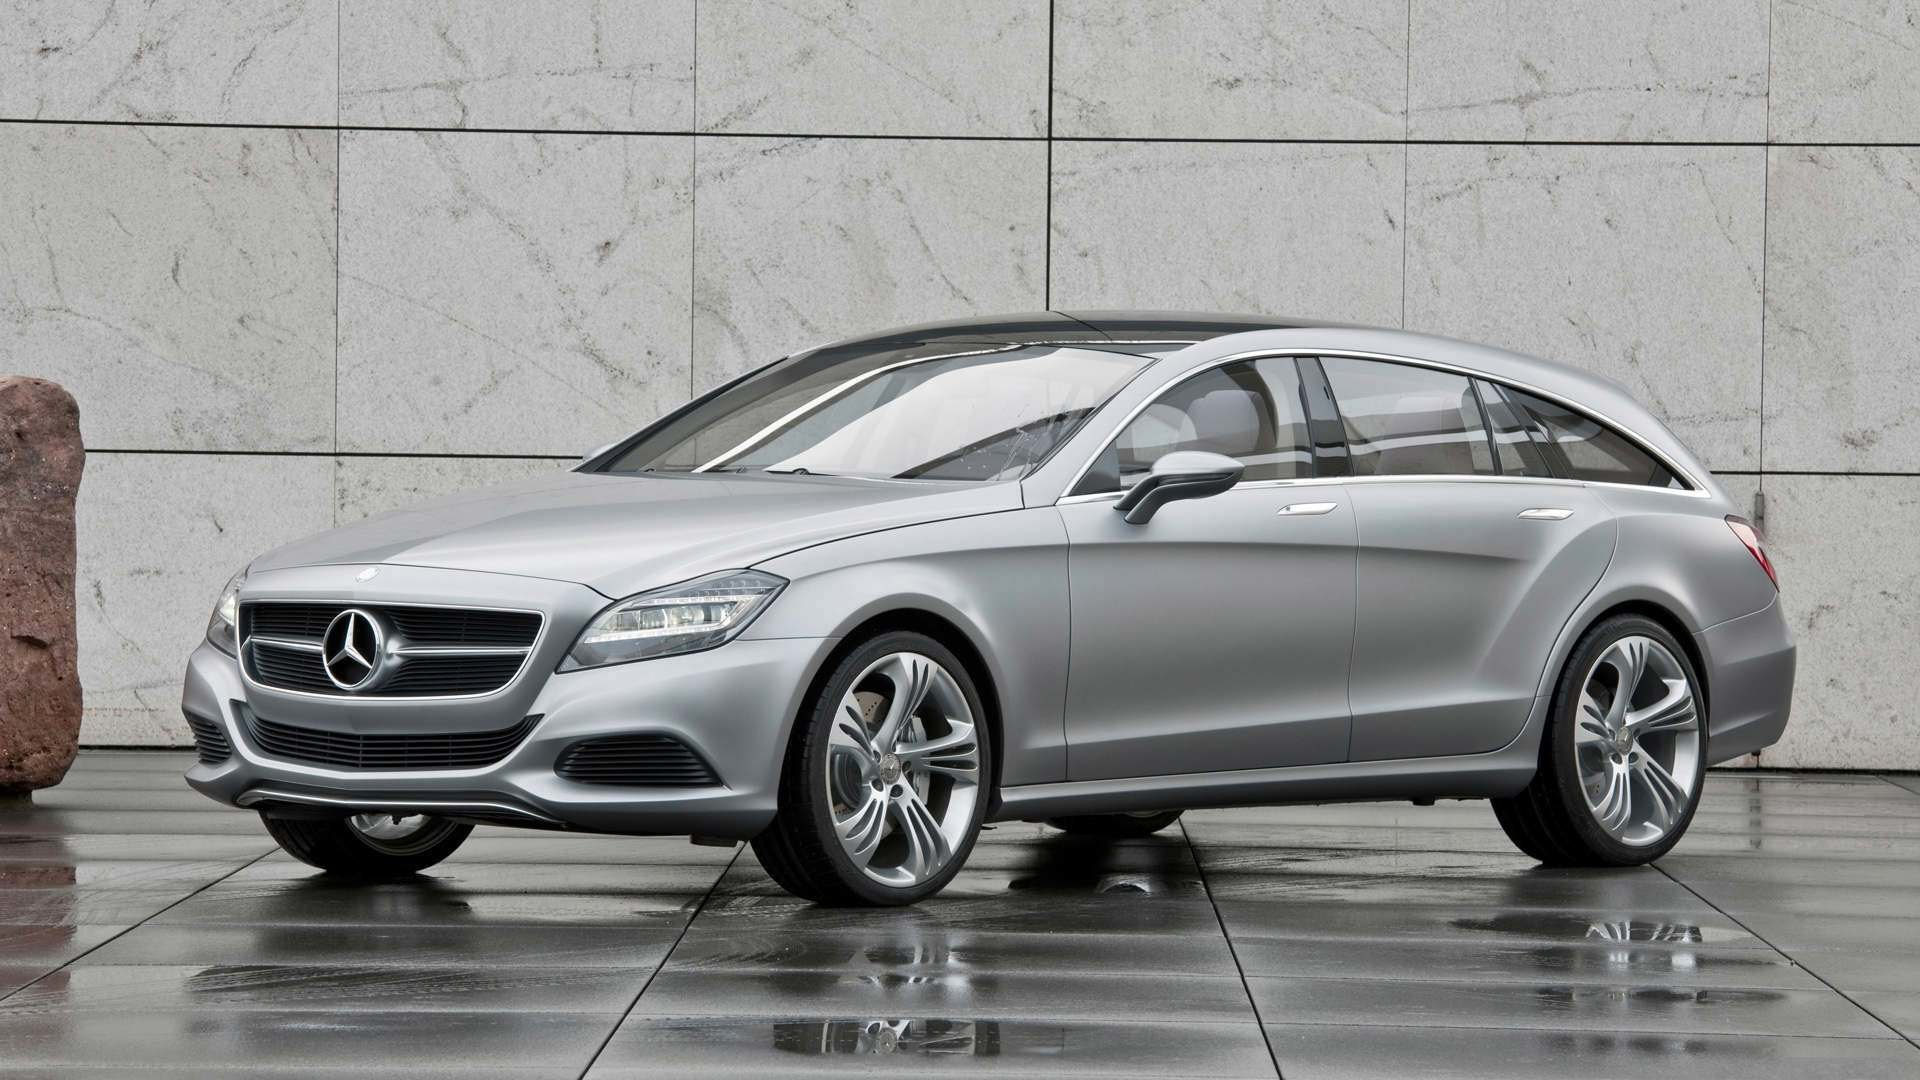 Latest Mercedes Benz Cars Hd Wallpapers Free Download